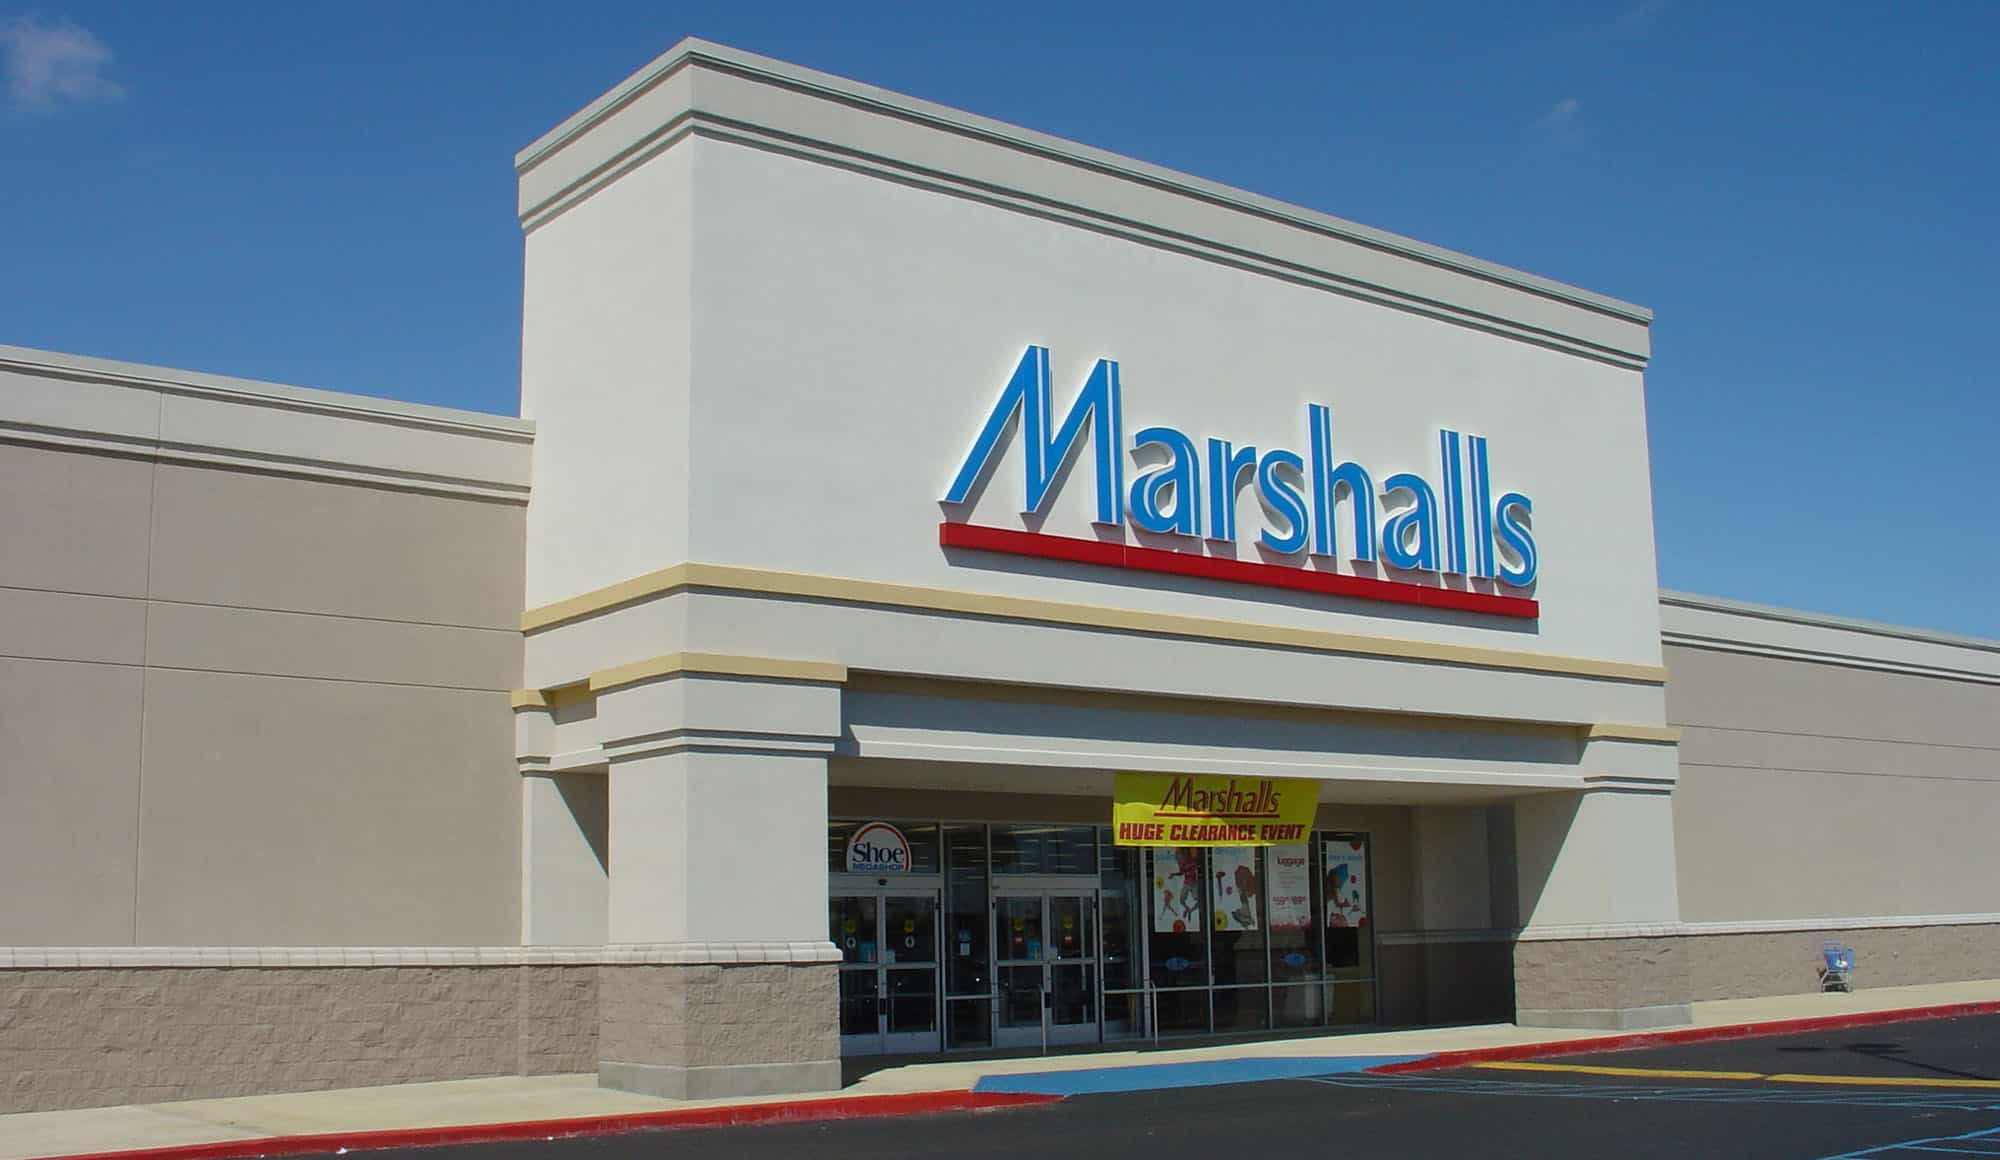 Eastgate Shopping Center Marshalls